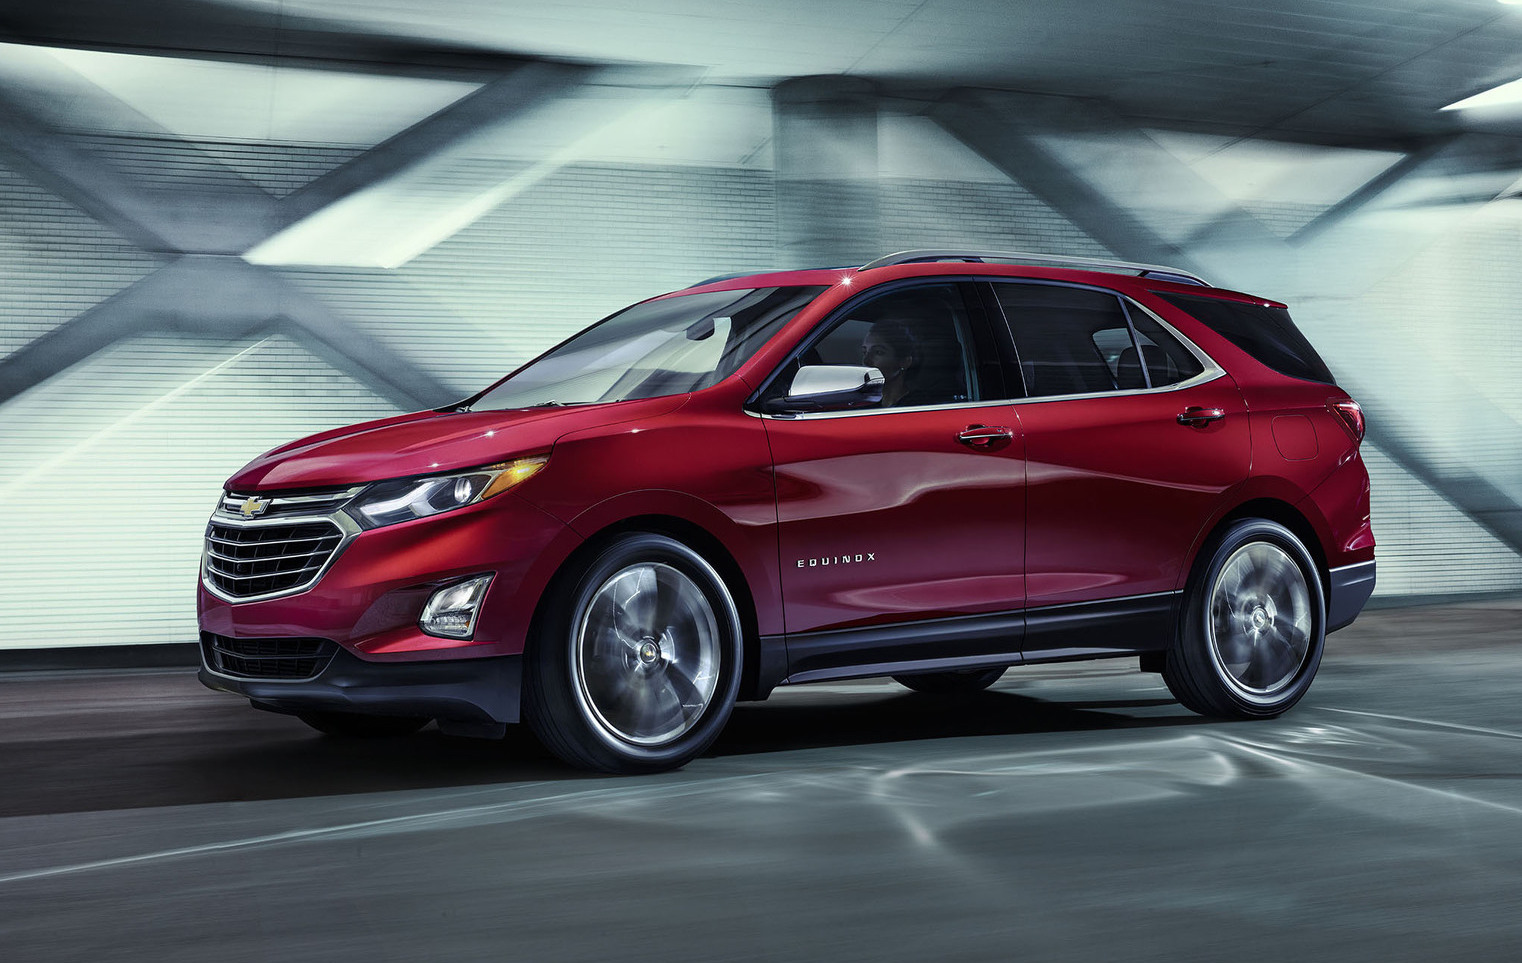 The all-new Equinox is based on the D2XX platform of the second ...